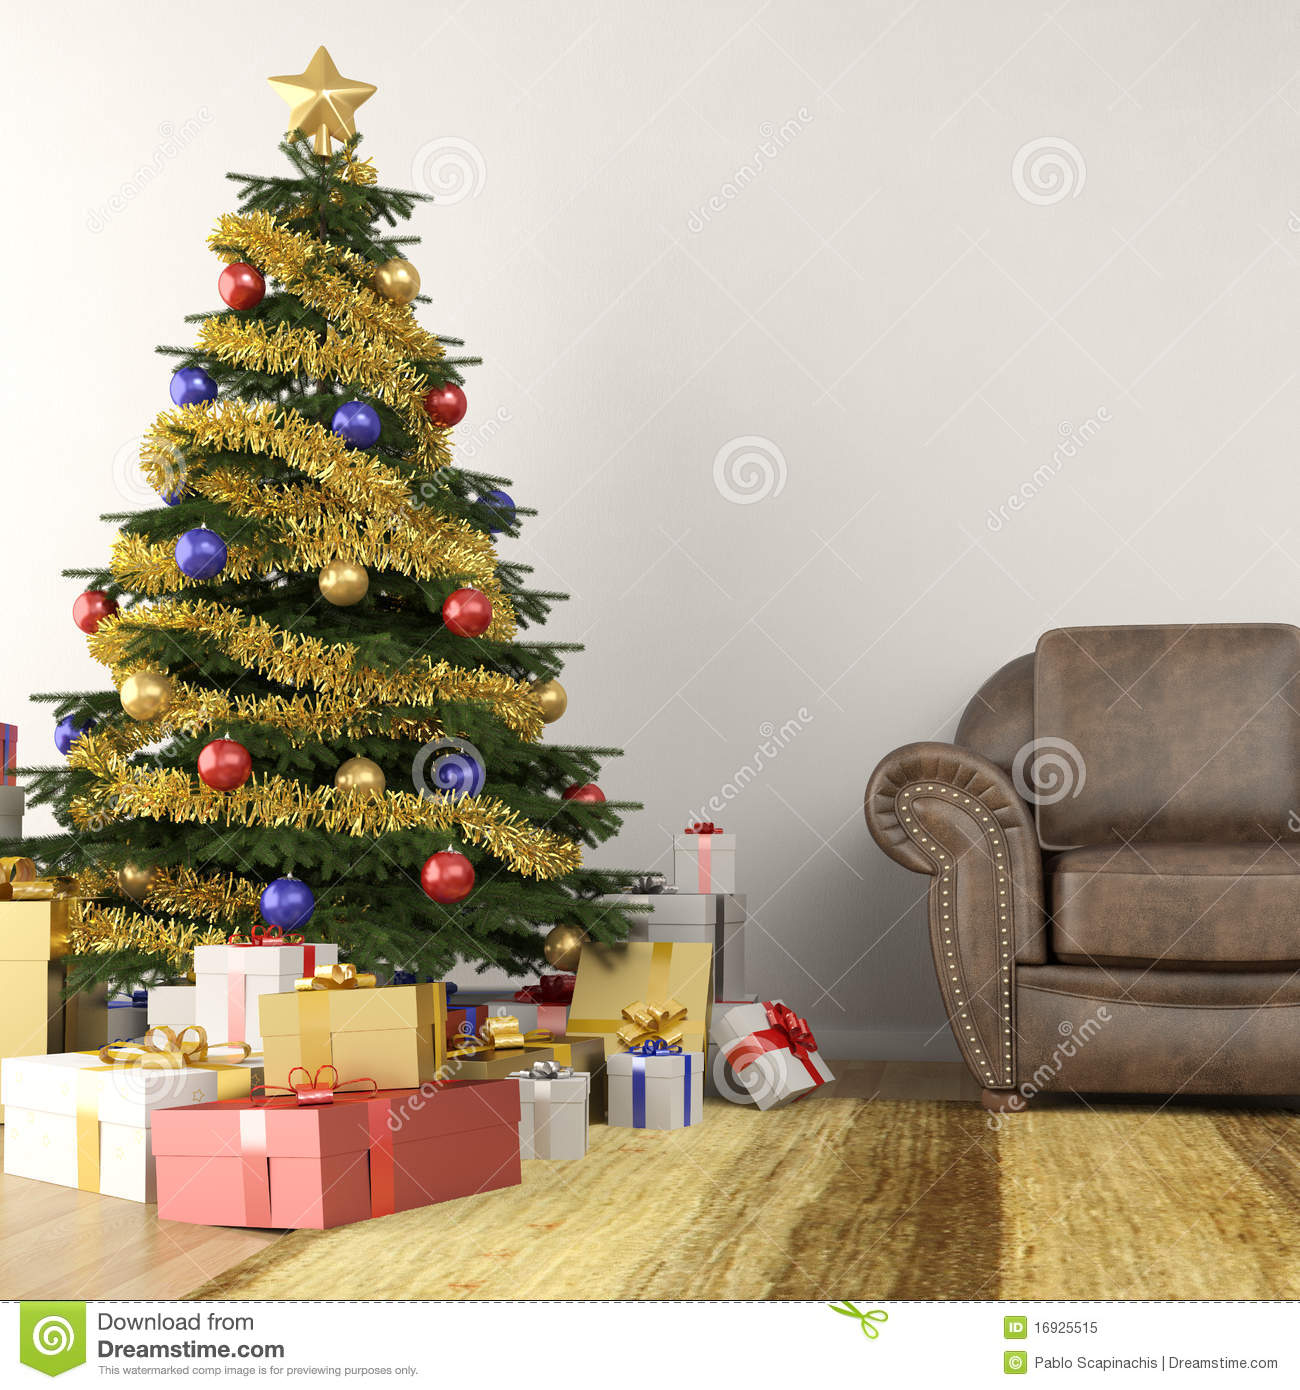 Christmas Tree In Living Room christmas tree in living room royalty free stock photo - image